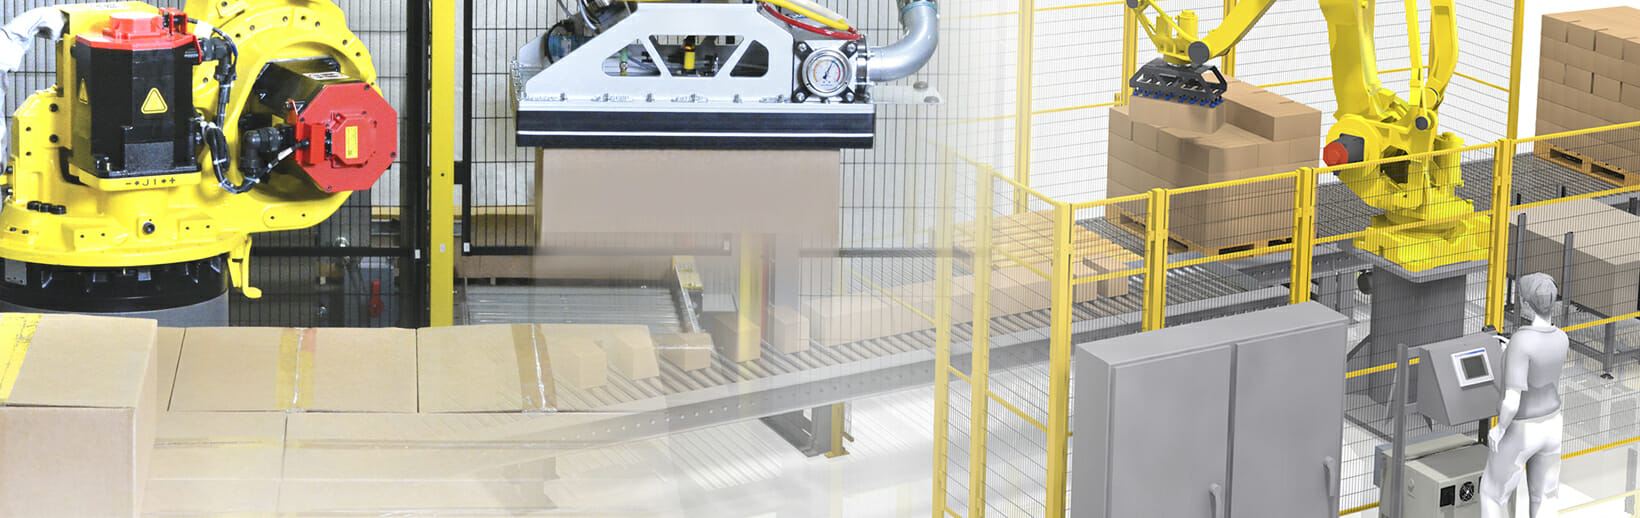 stratum-robotic-palletizing-system